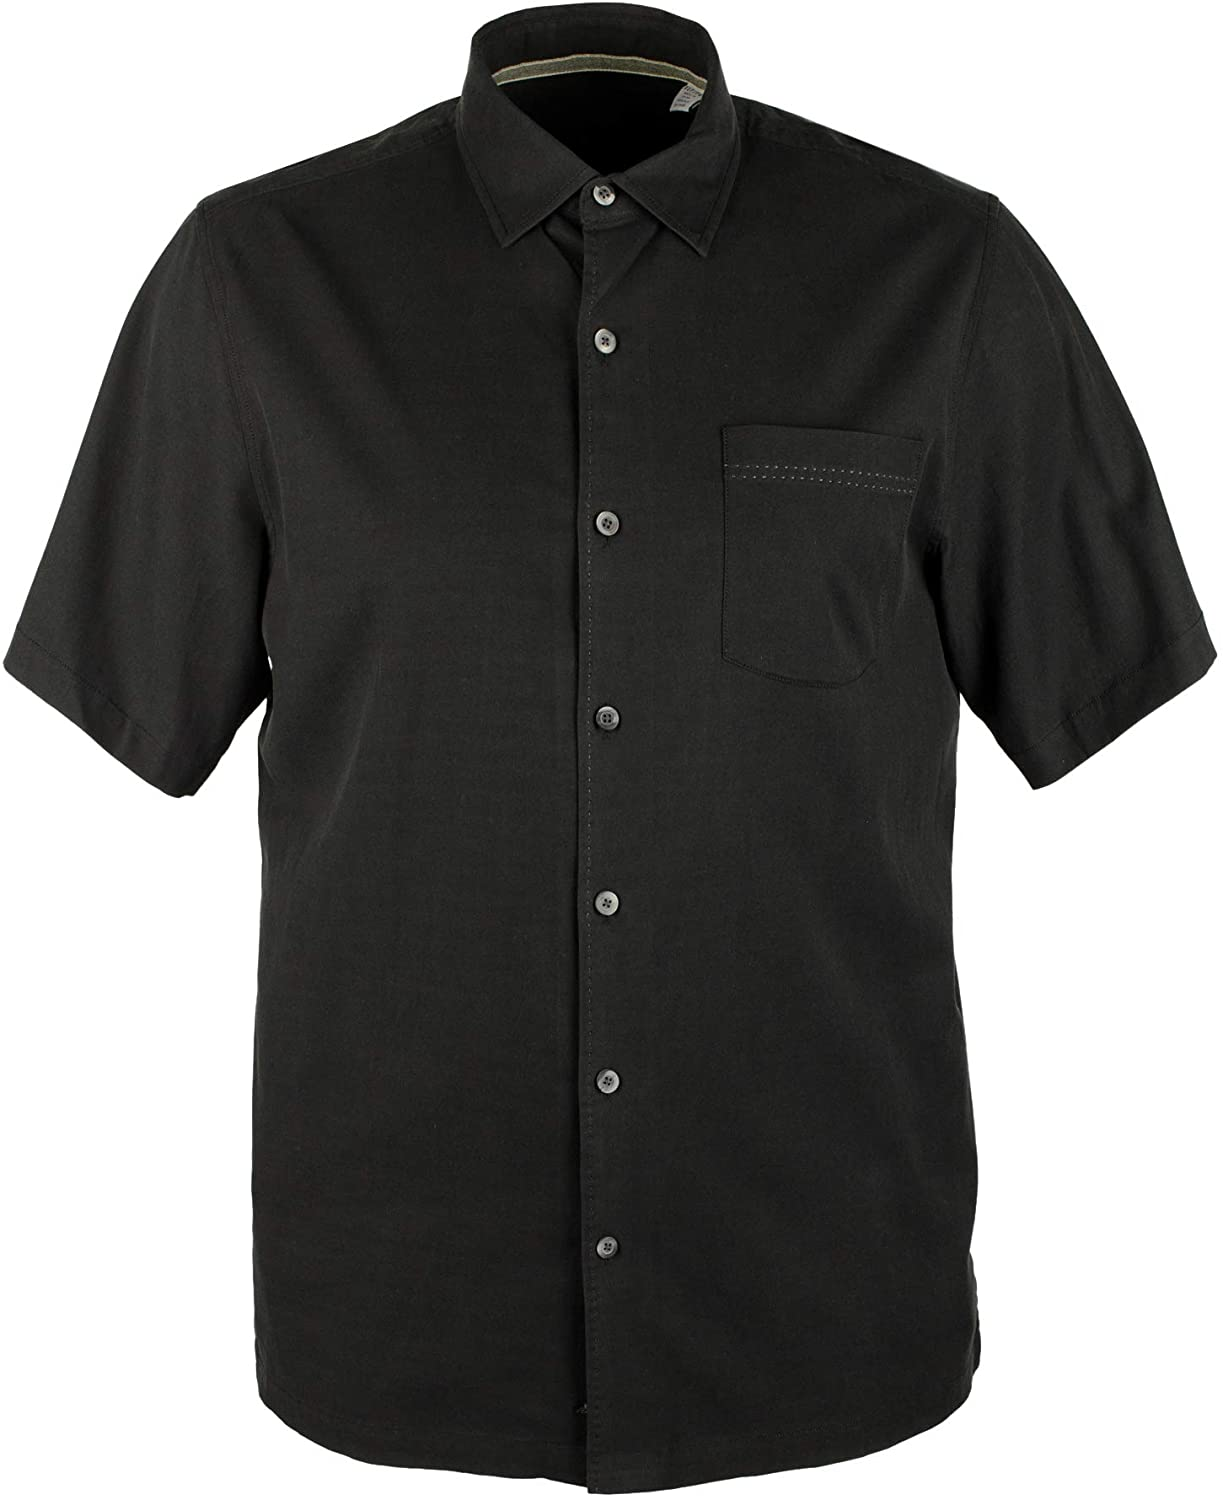 Tommy Bahama Big & Tall Big & Tall Catalina Stretch Twill Shirt